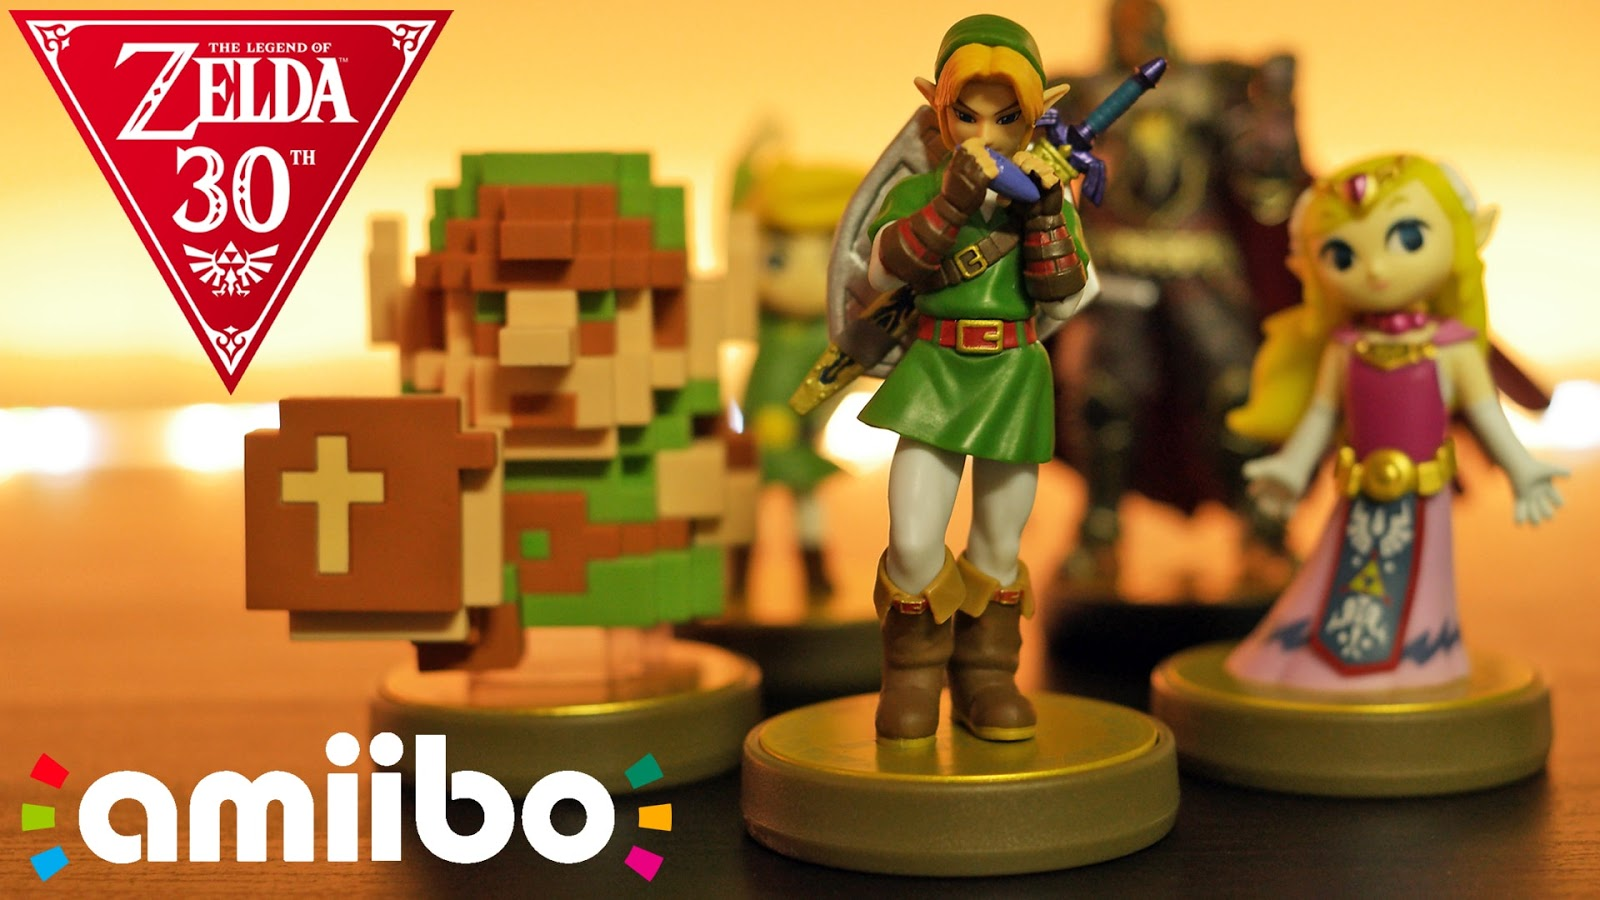 Legend of Zelda 30th Anniversary amiibo hands on 4K video